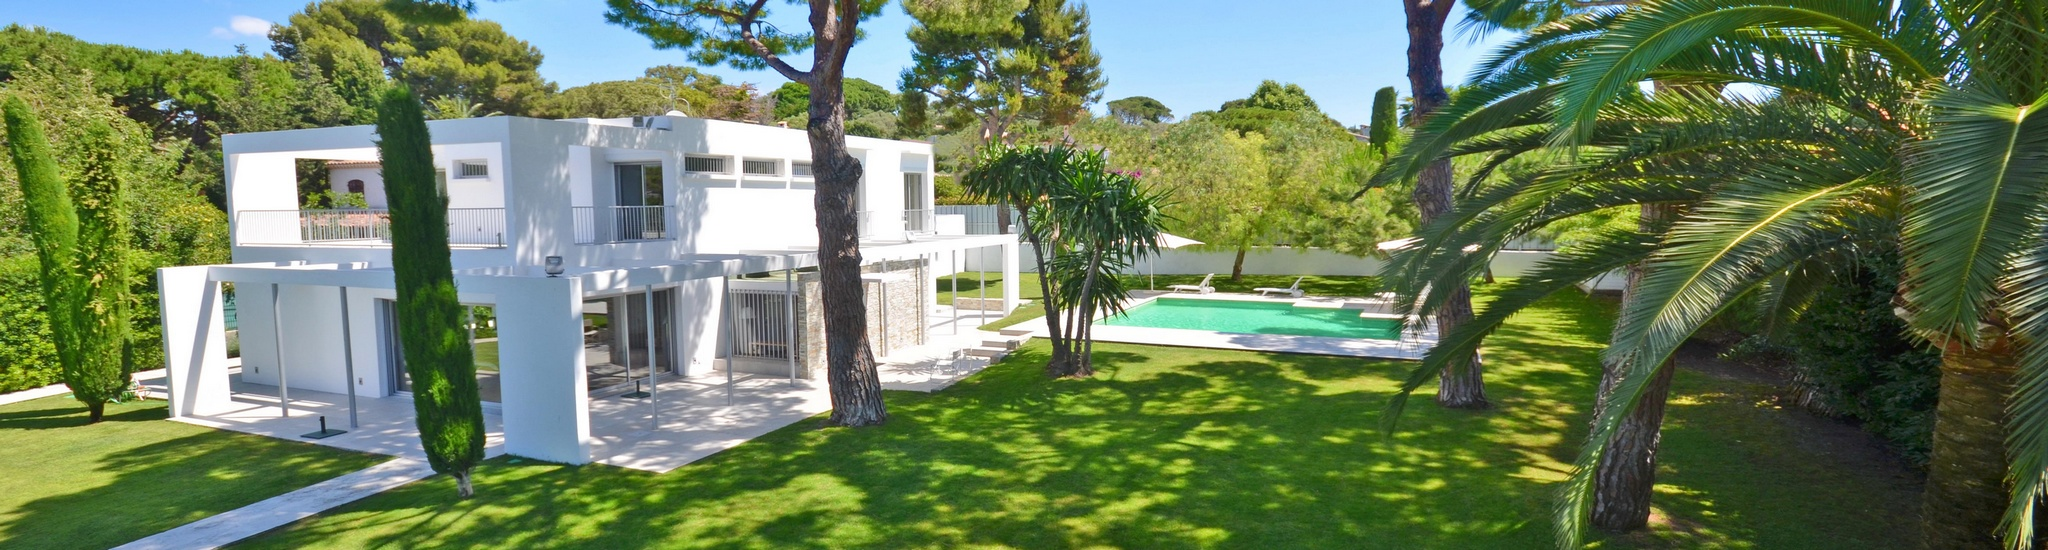 CAP D'ANTIBES - 06160 On the West side of Cap d�Antibes, near the beaches, this modern prope...